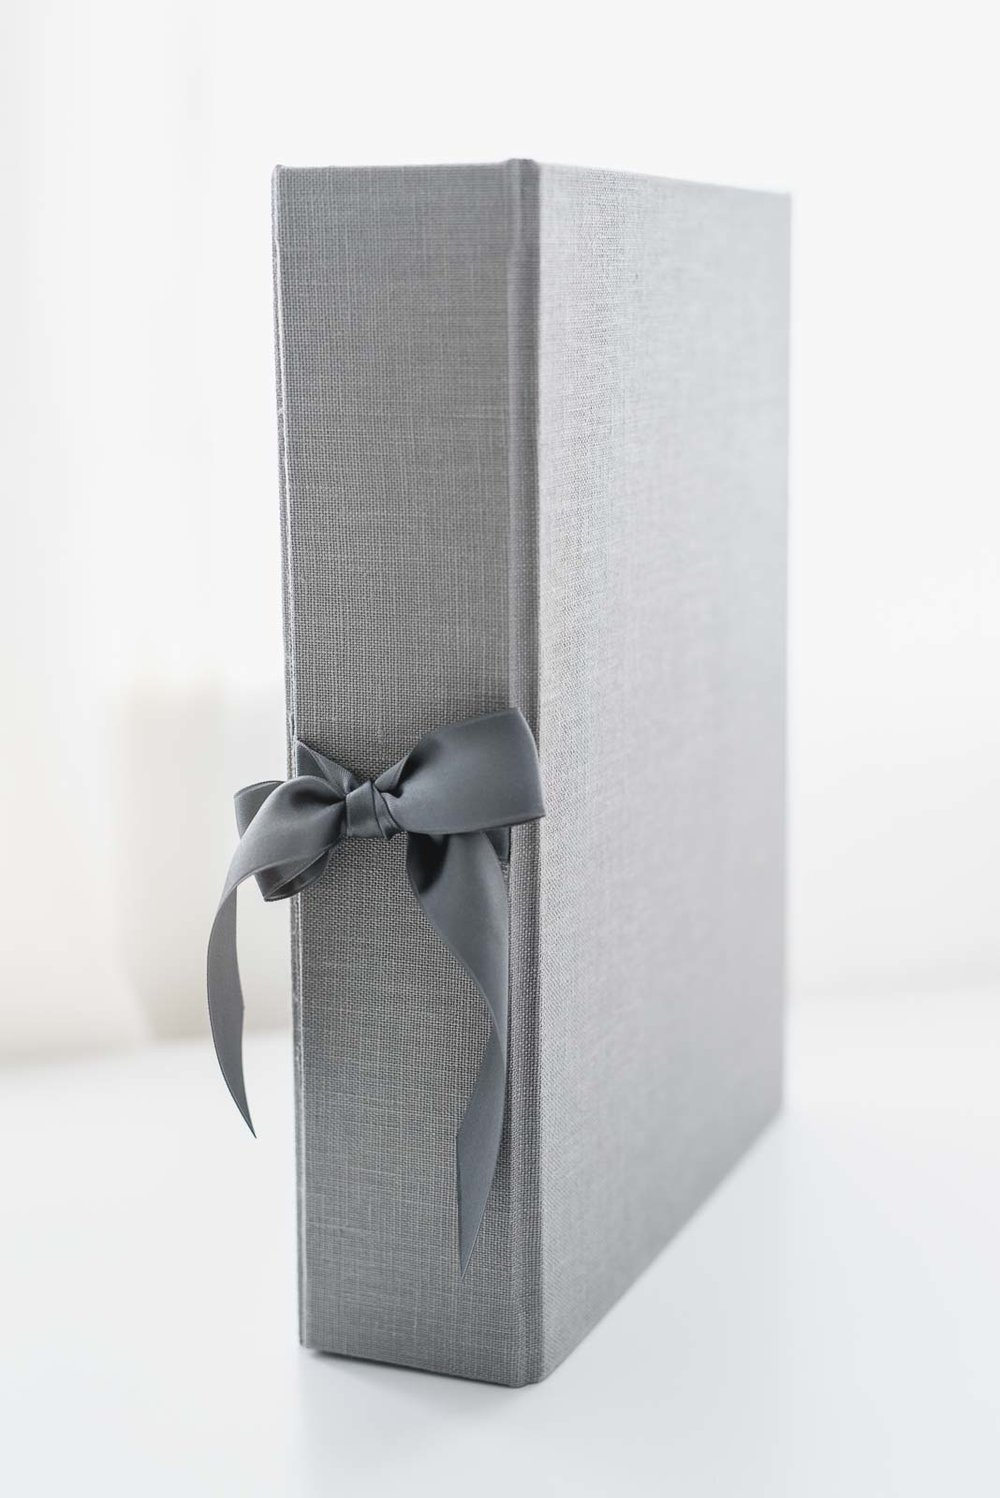 N. Lalor Photography print products - Cypress Albums folio box in sea mist gray linen and gray bow accent.